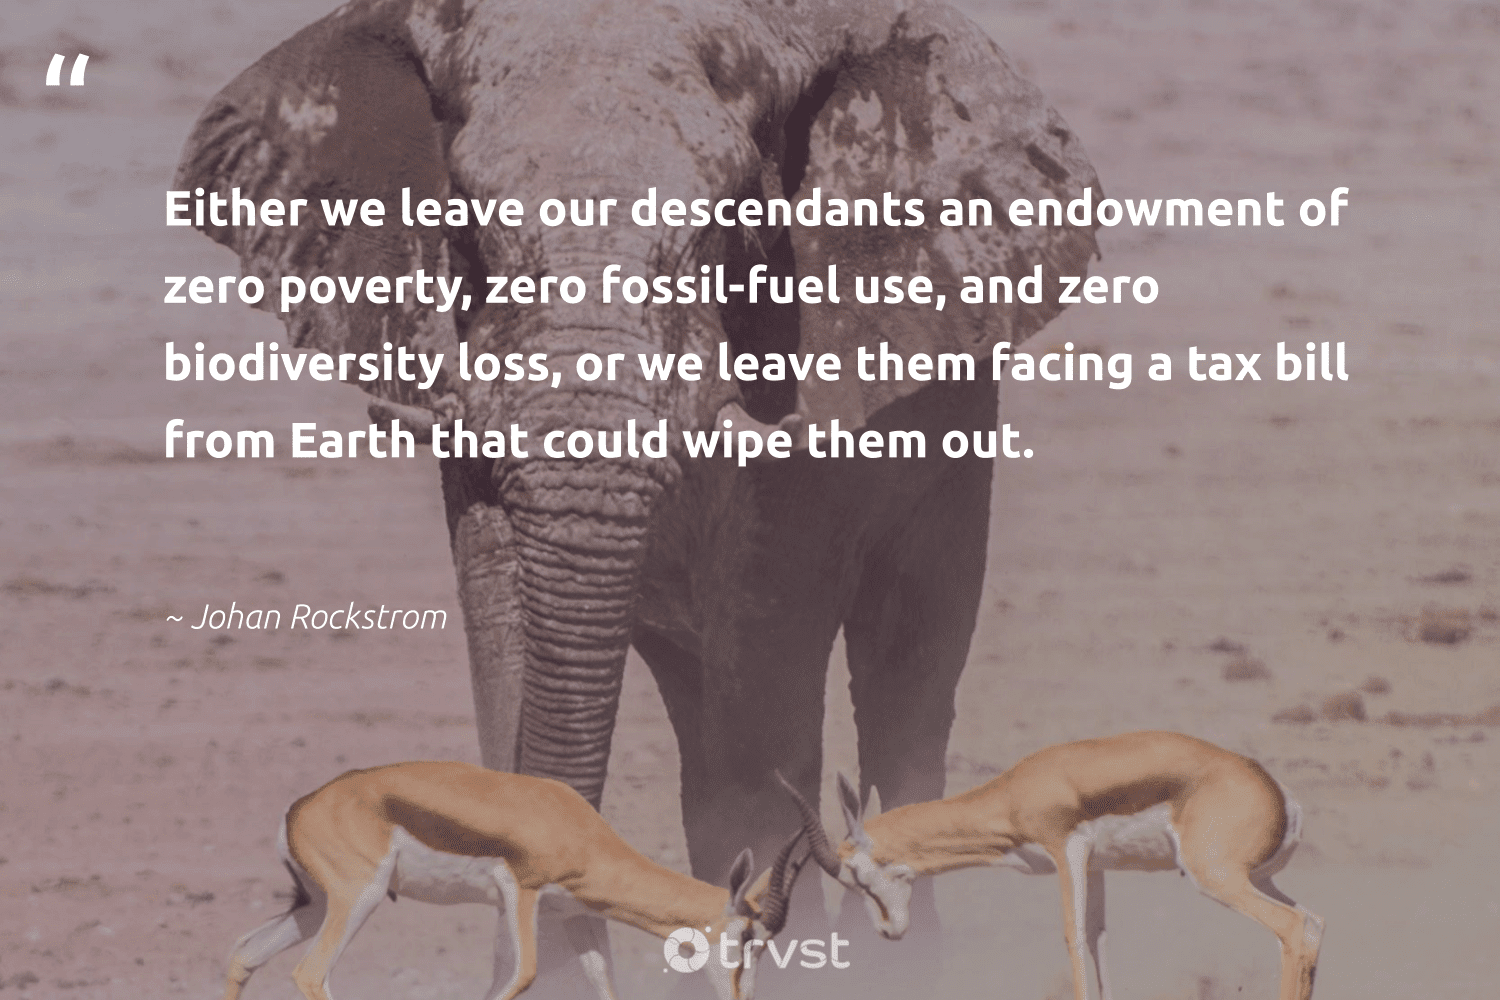 """""""Either we leave our descendants an endowment of zero poverty, zero fossil-fuel use, and zero biodiversity loss, or we leave them facing a tax bill from Earth that could wipe them out.""""  - Johan Rockstrom #trvst #quotes #earth #fossil #biodiversity #poverty #nature #biology #wildlifeplanet #dogood #planet #science"""